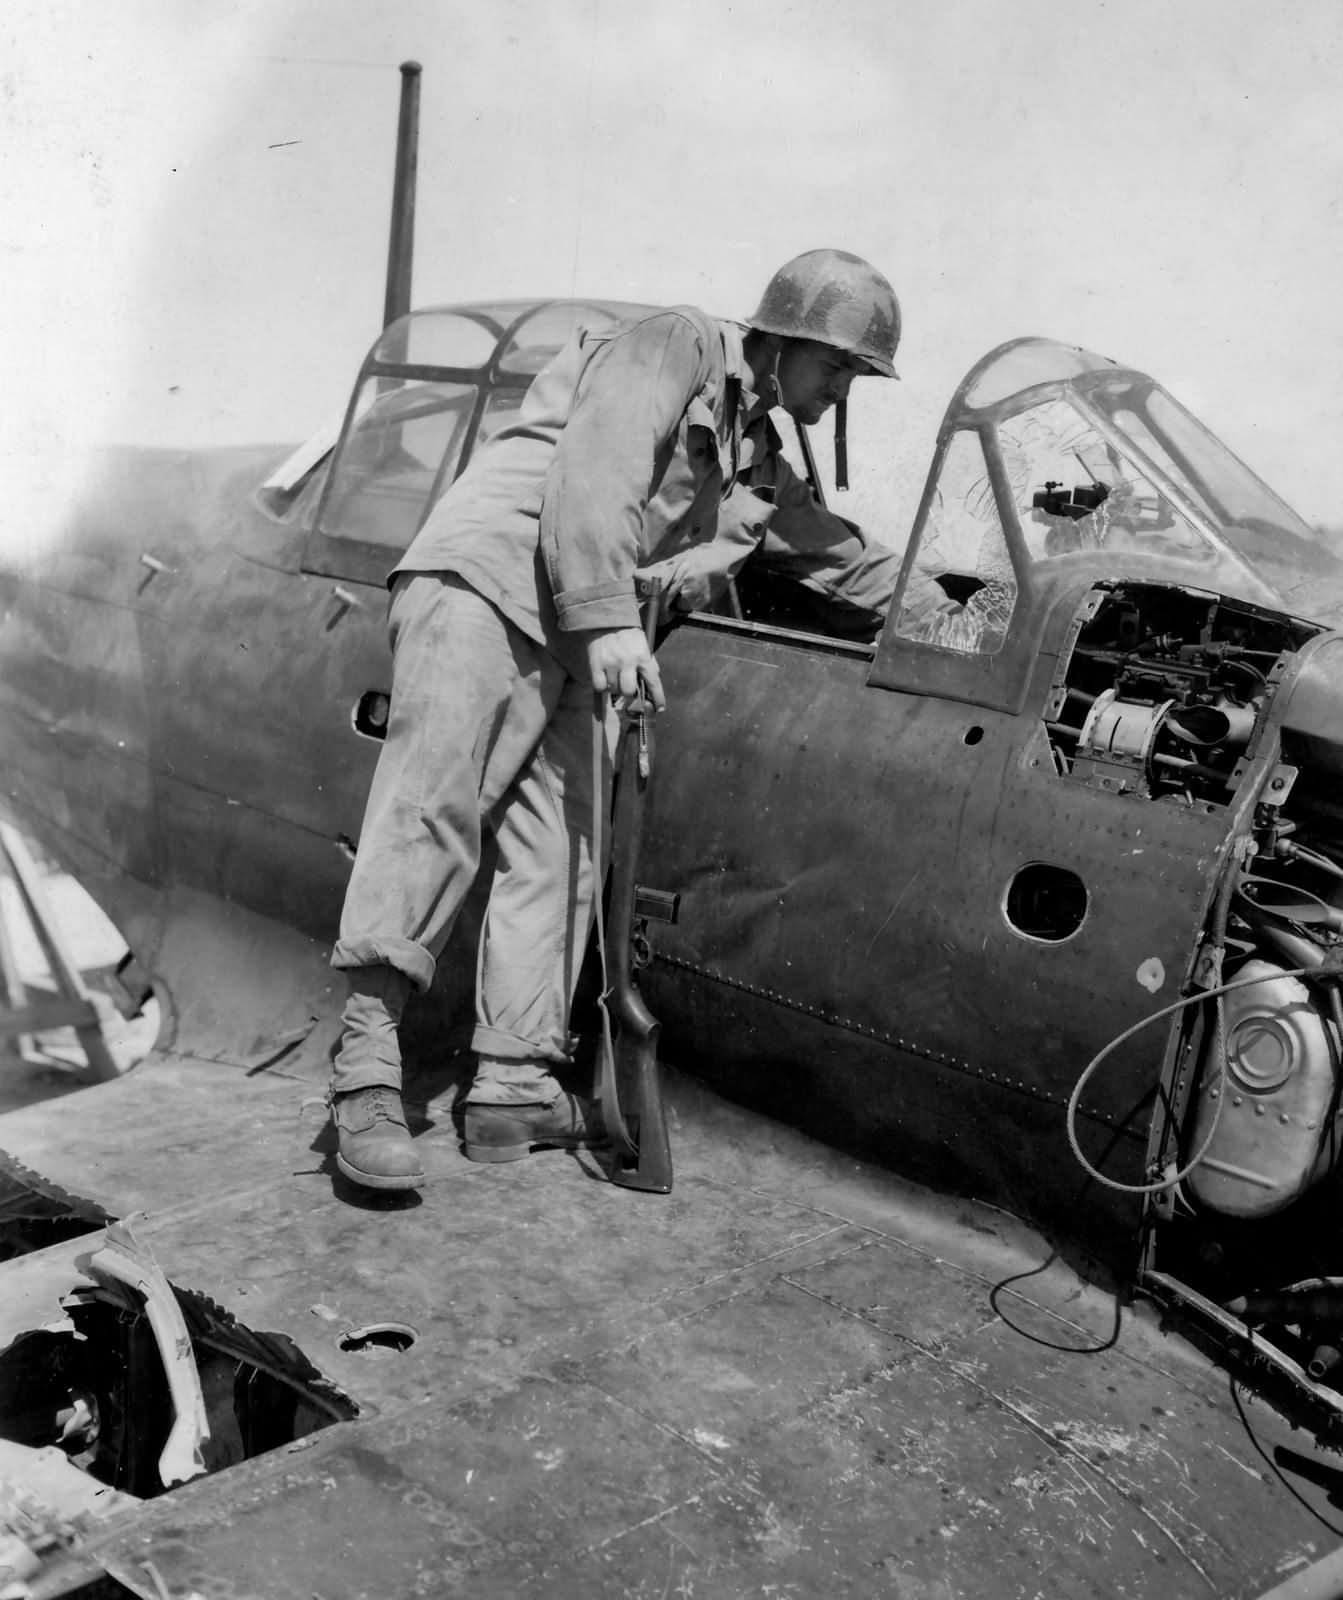 A6M5_Zero_Saipan_with_M1_Carbine_armed_Marine_1944.jpg